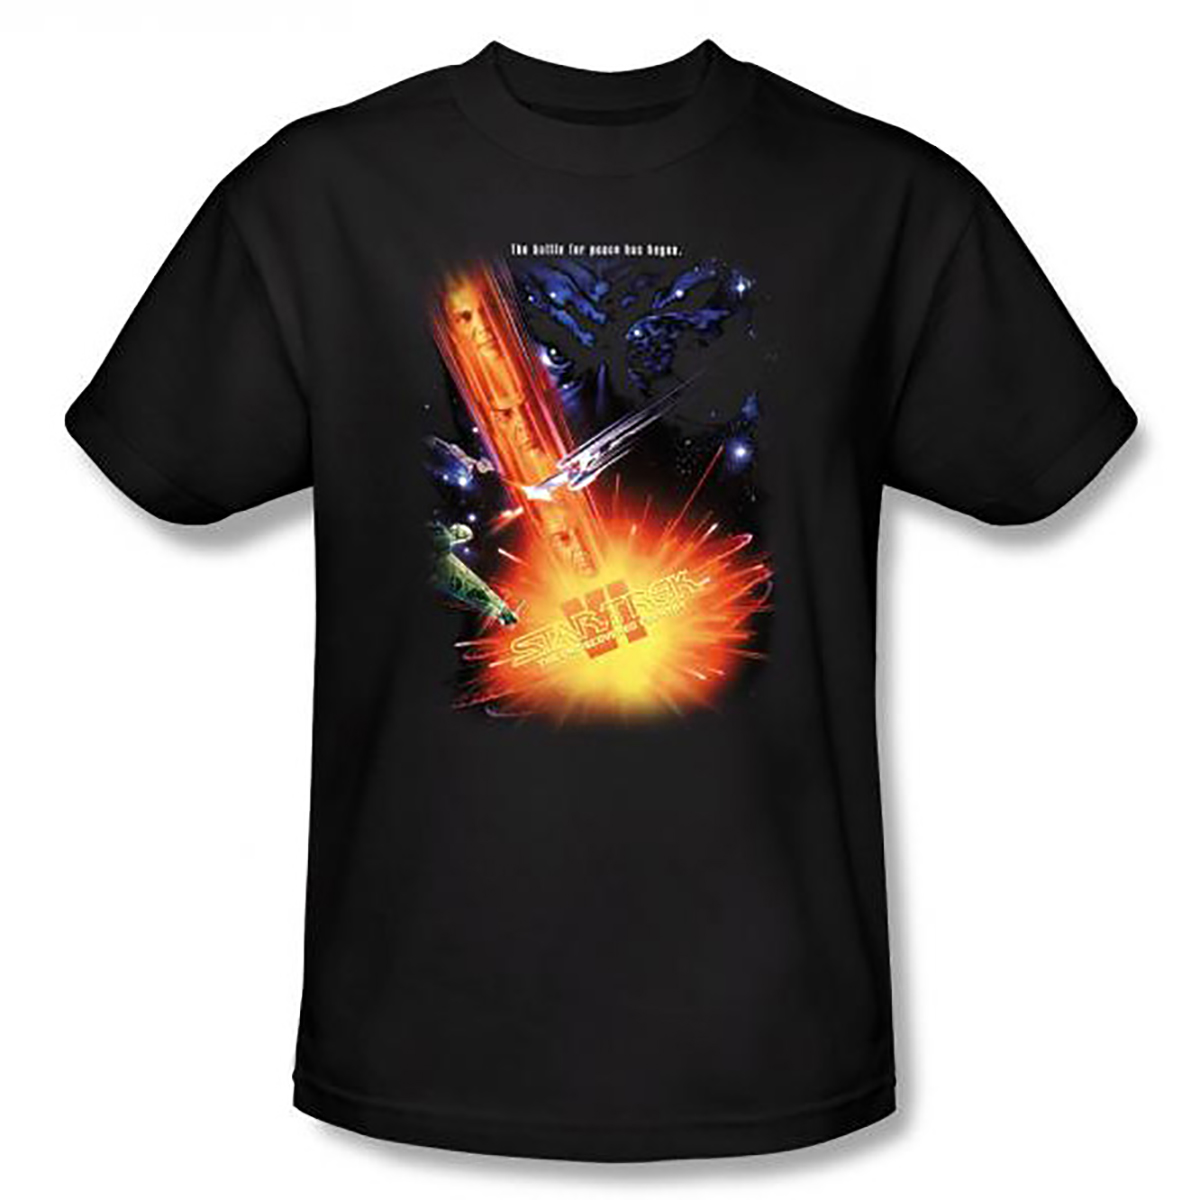 Star Trek The Undiscovered Country T-Shirt